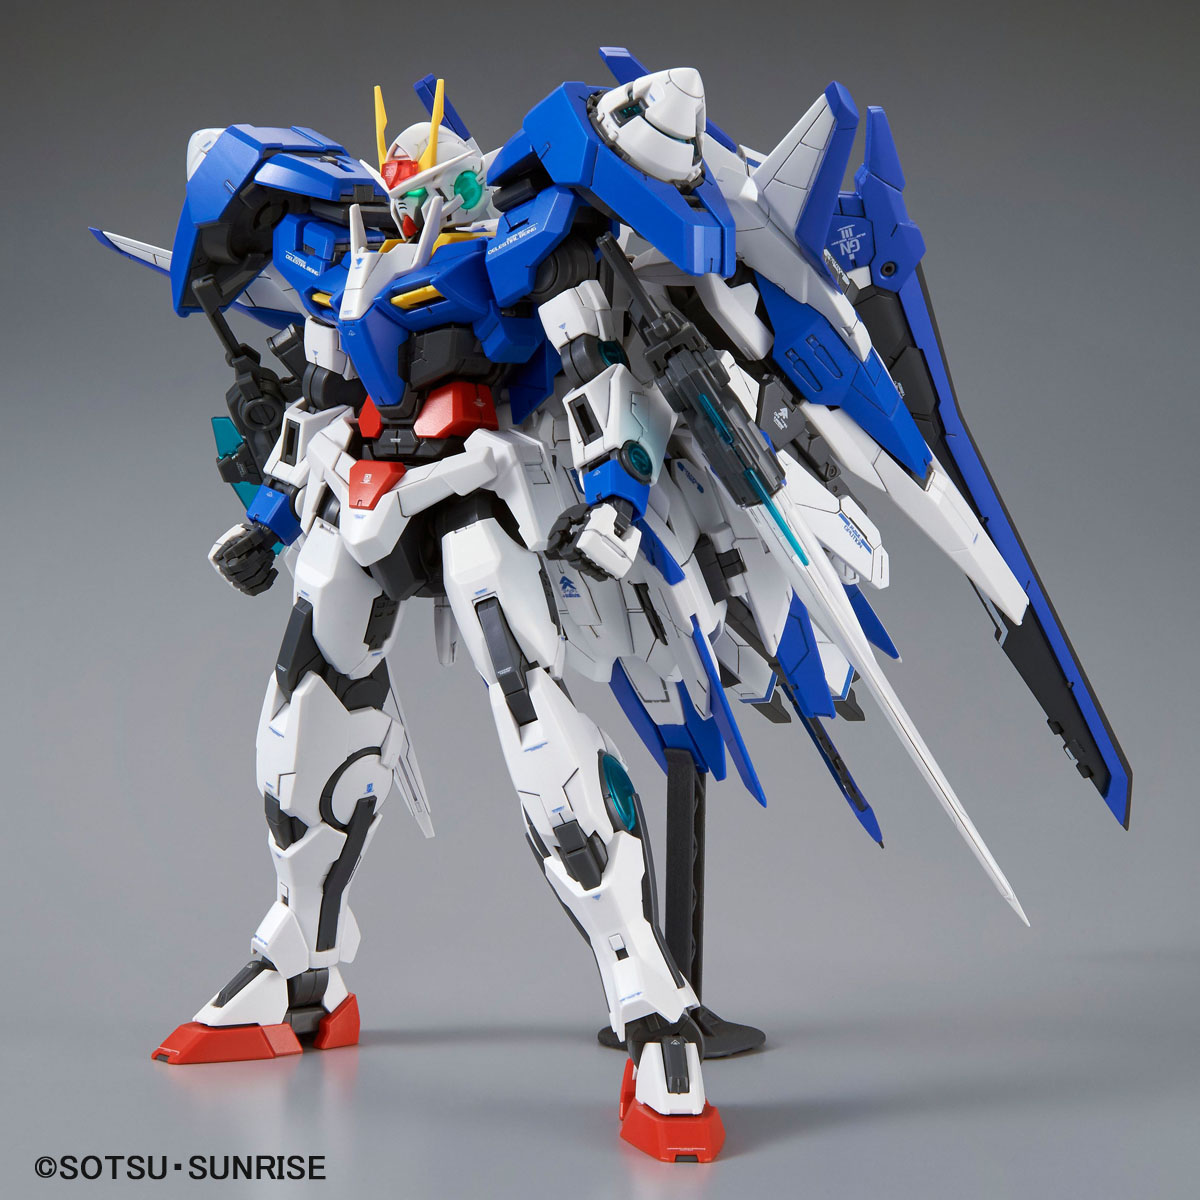 00 XN Raiser Mobile Suit Gundam 00V MG 1/100 Model Kit